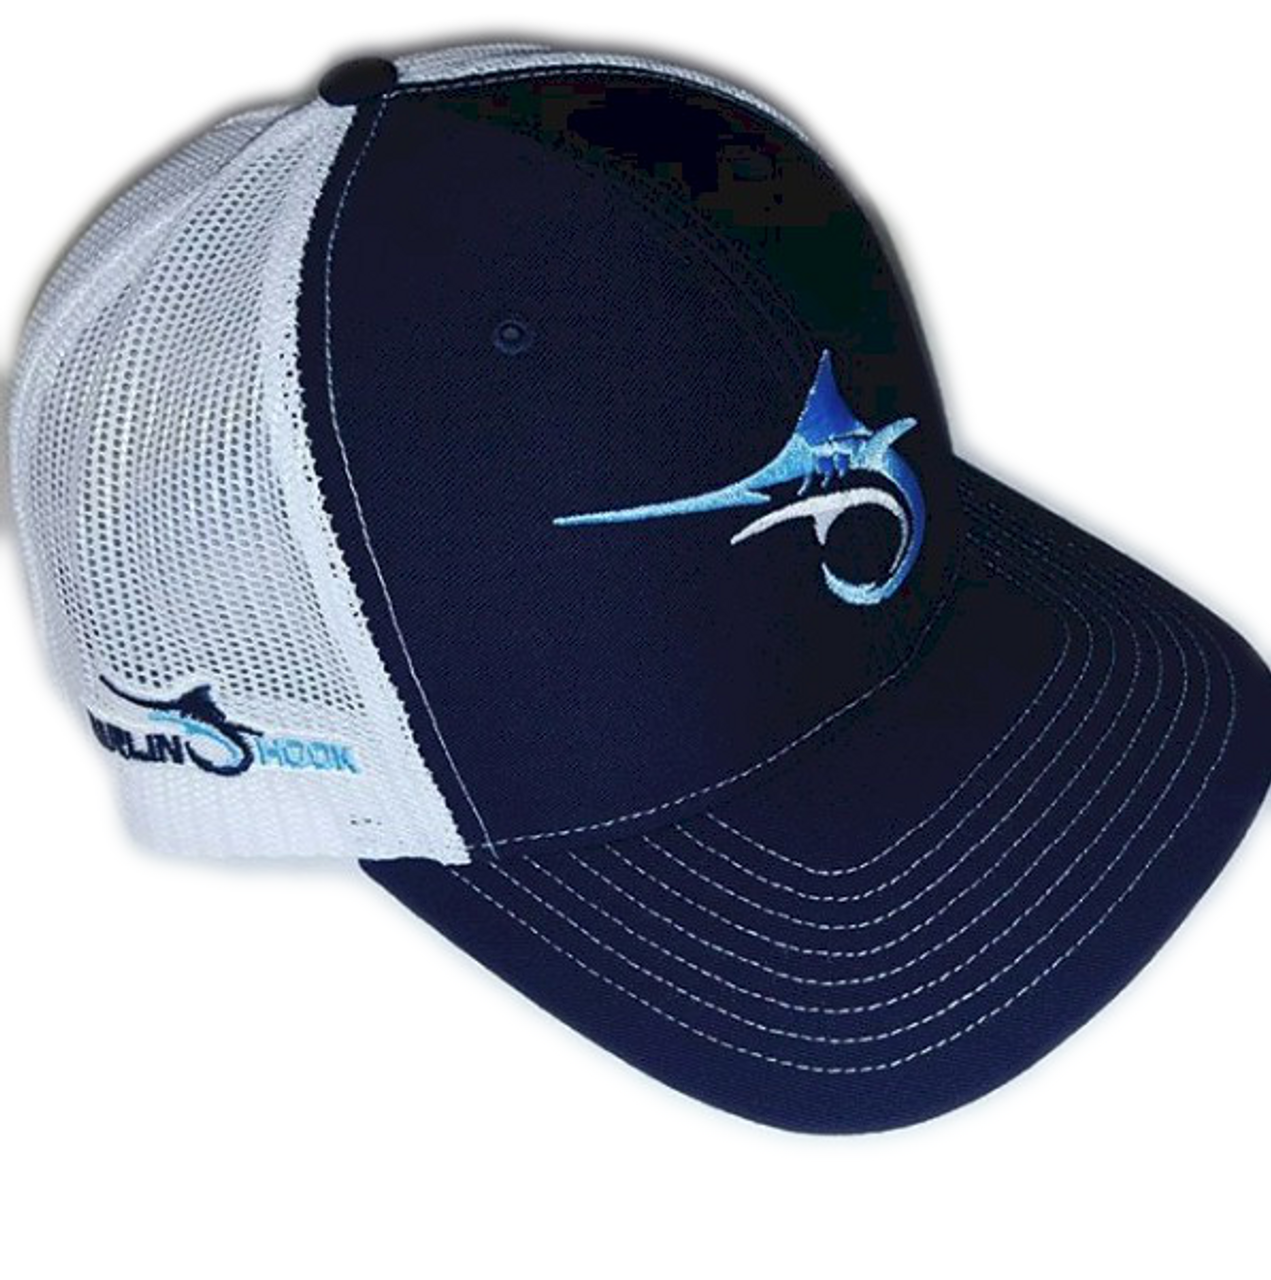 5431b88026451 Marlin Hook Trucker Hat - Symbol - Navy White - Alltackle.com